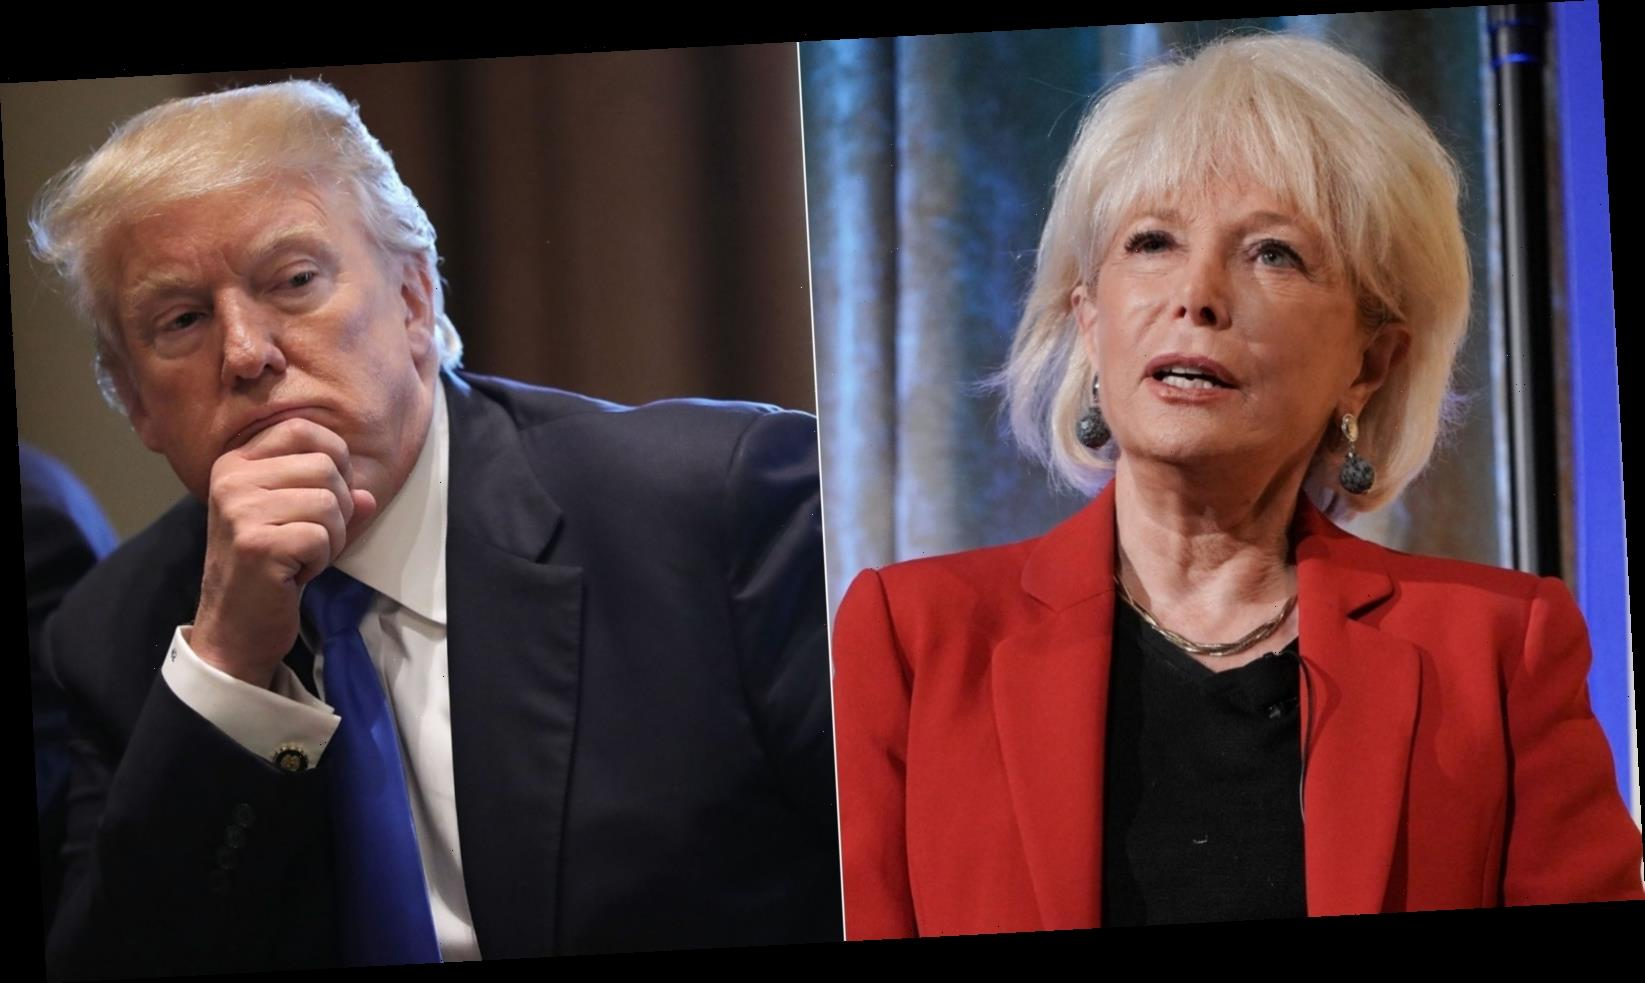 The truth about Donald Trump's relationship with Lesley Stahl